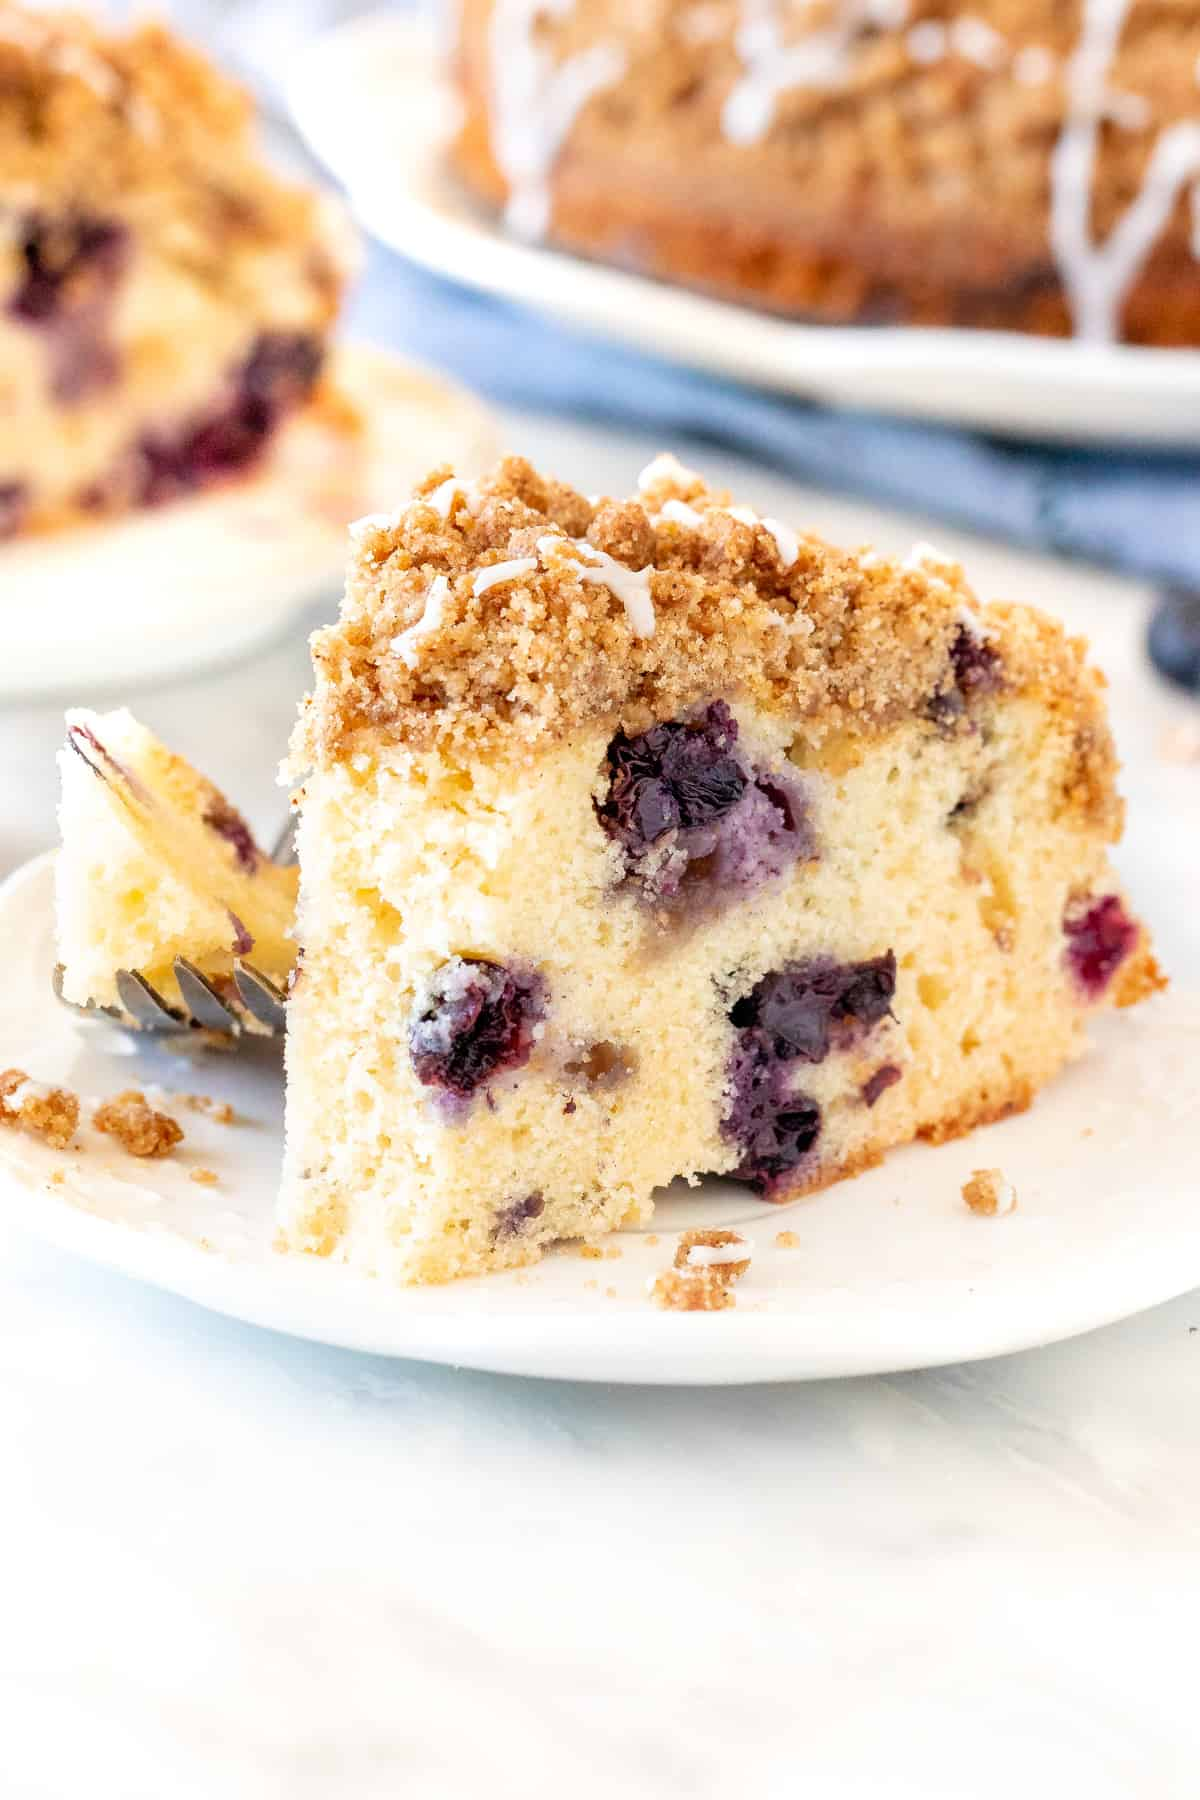 Slice of blueberry cake with cinnamon streusel on top with bite taken out of it